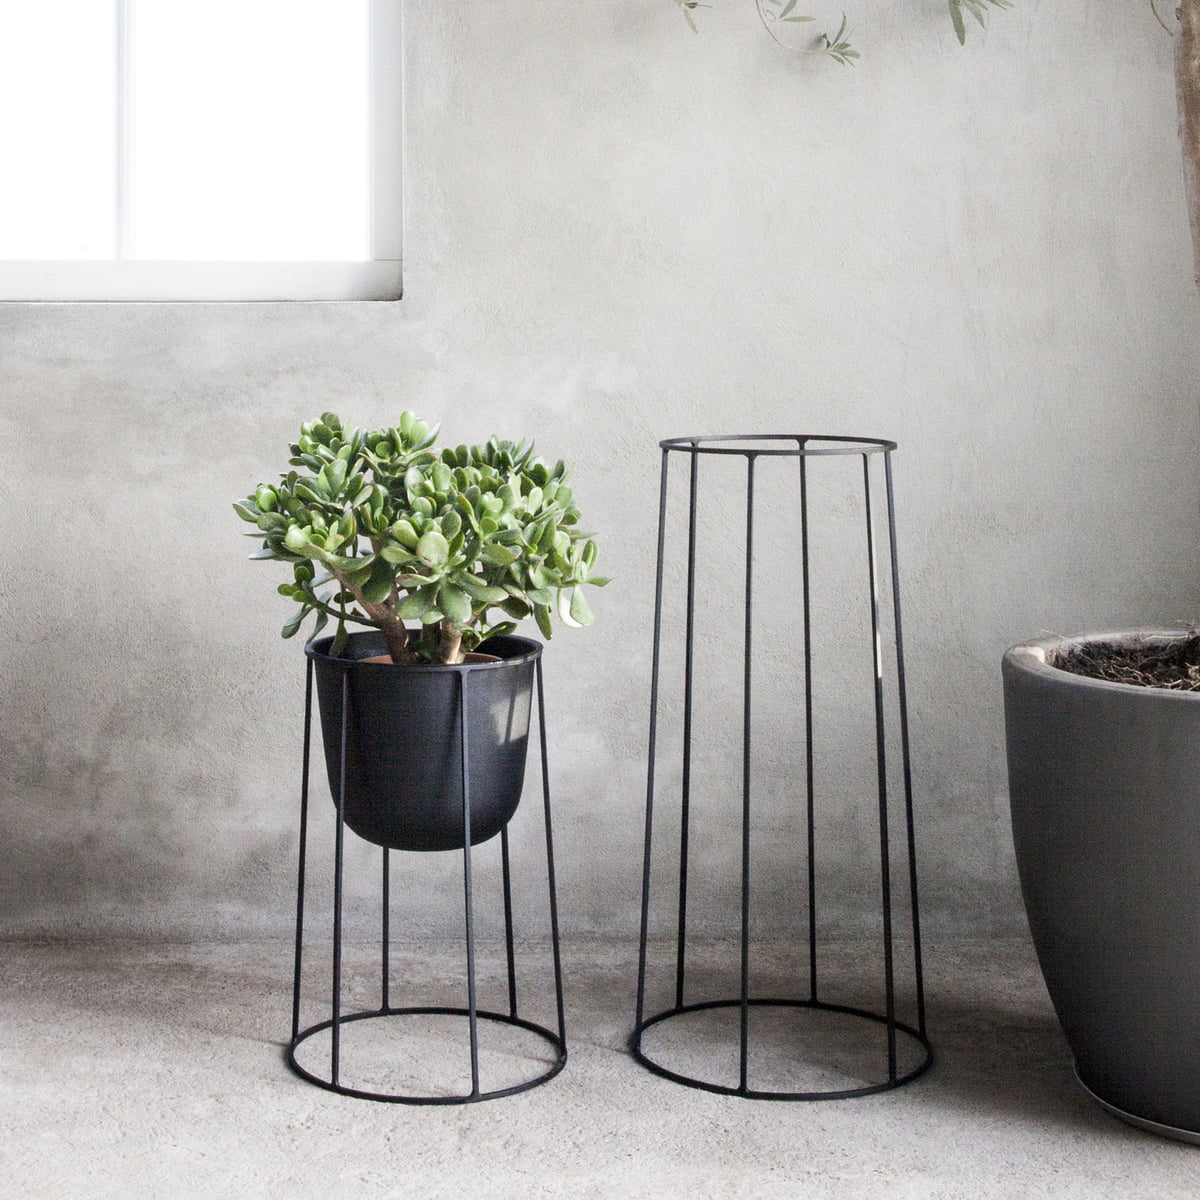 The Wire Pot By Menu In The Home Design Shop